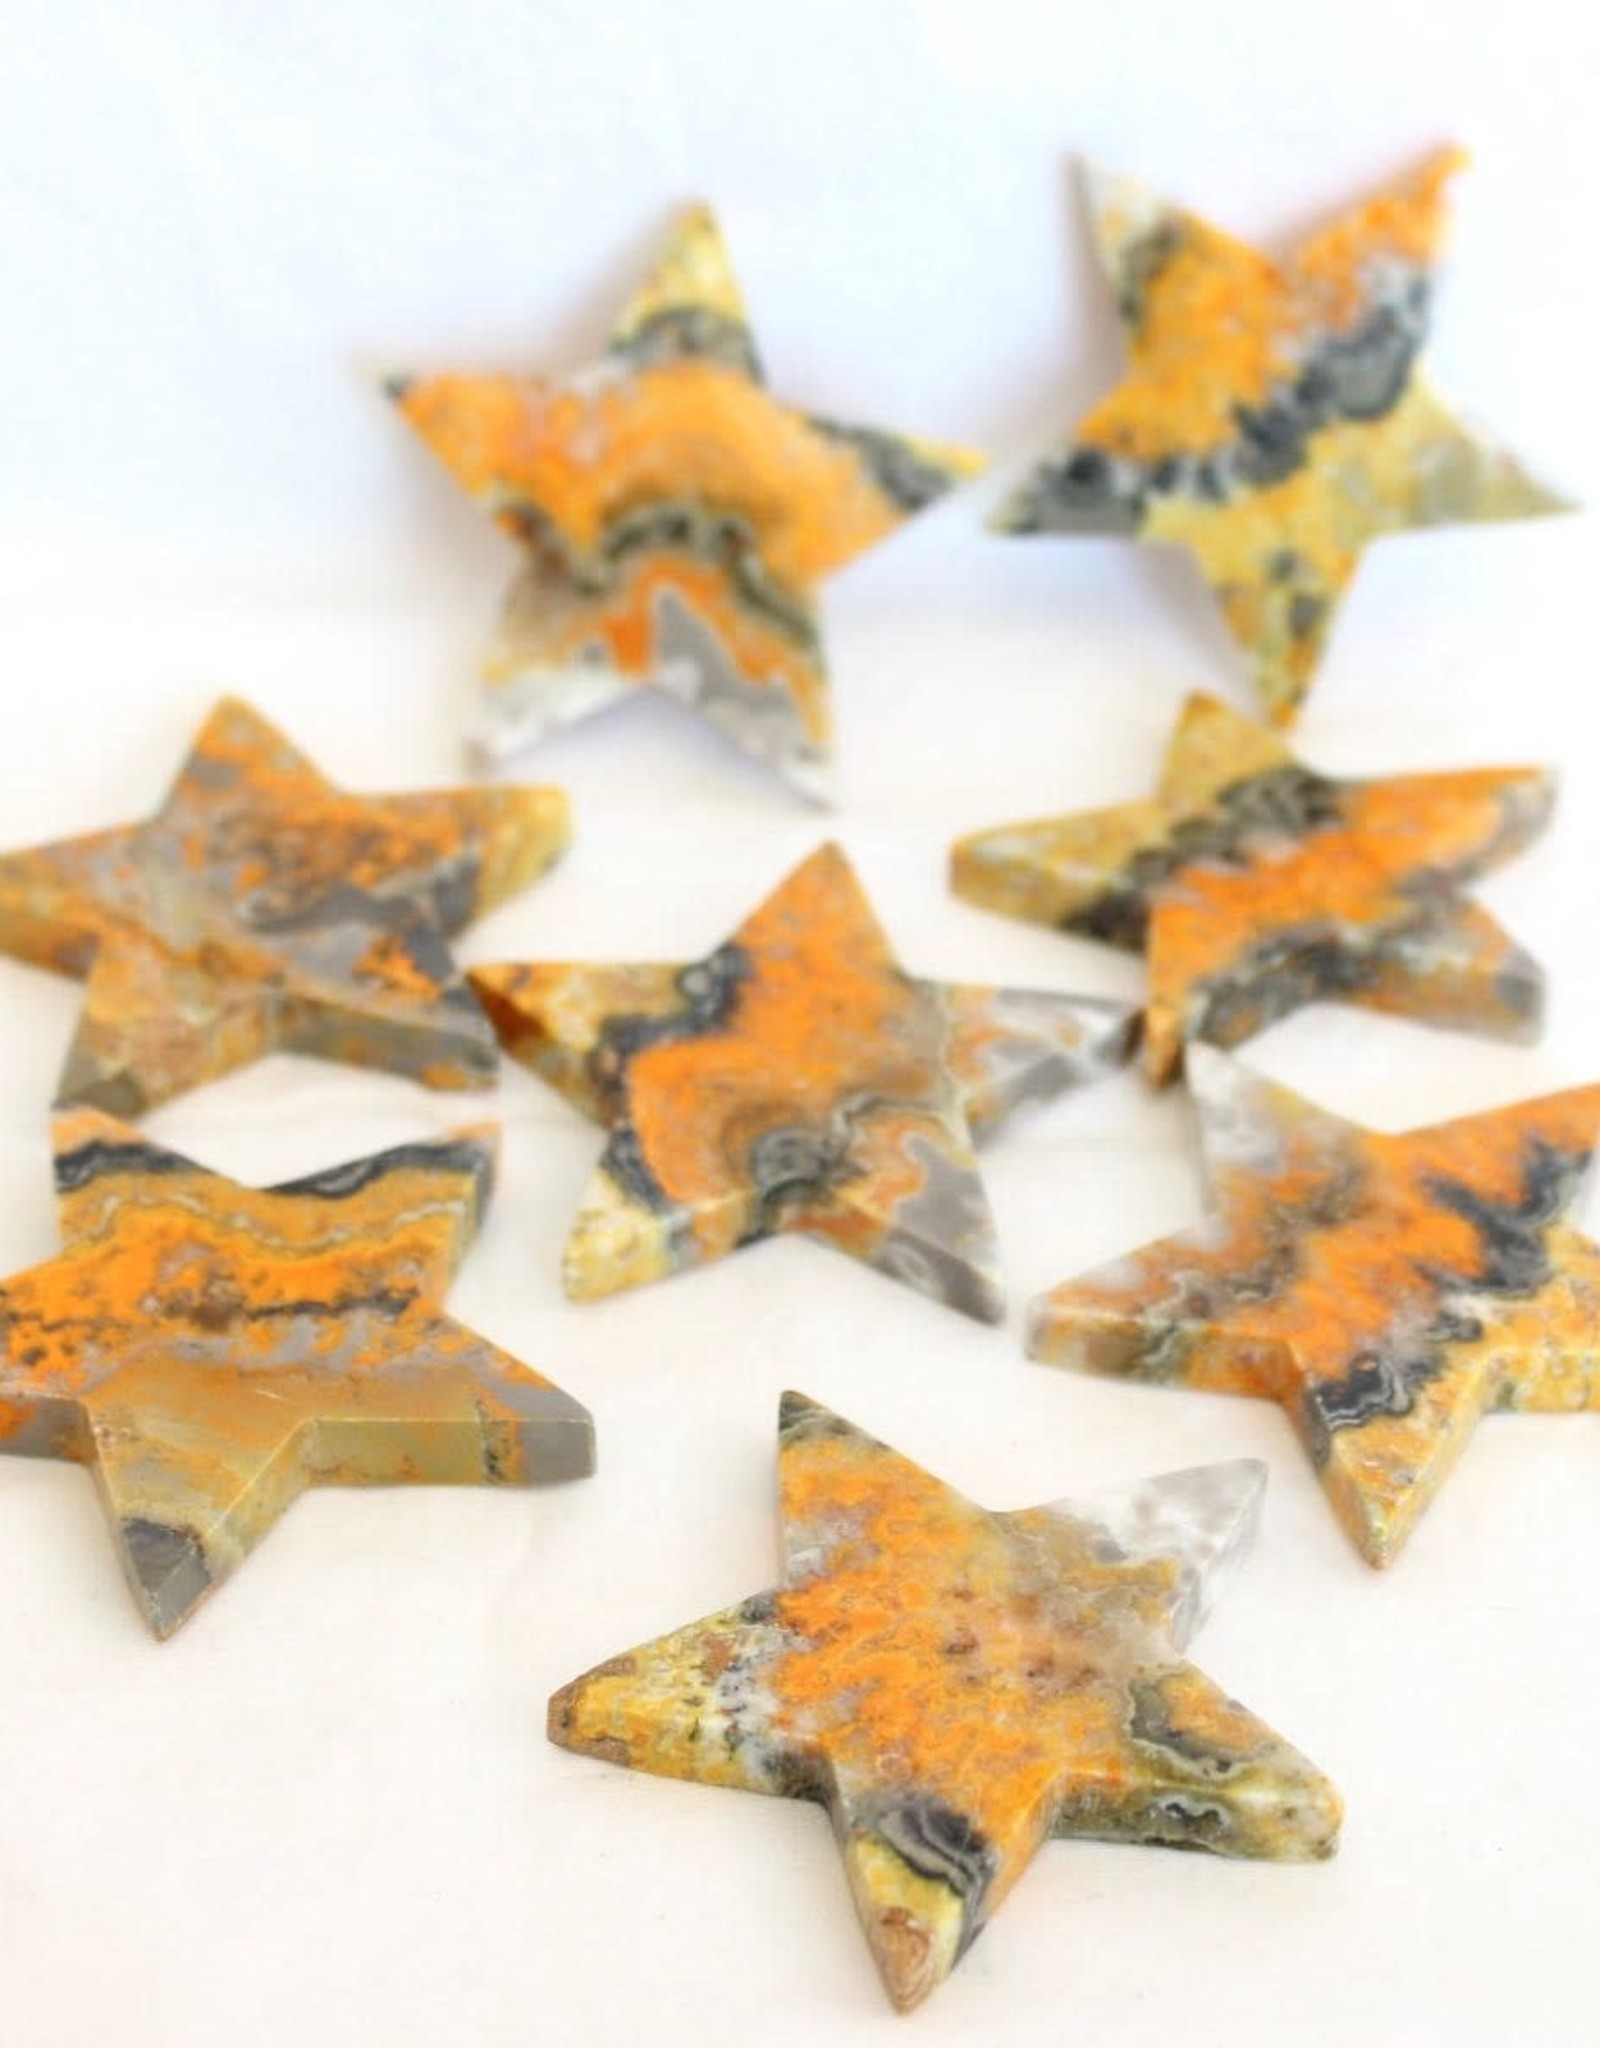 Bumblebee Jasper Stars charged in the Full Strawberry Moon Eclipse